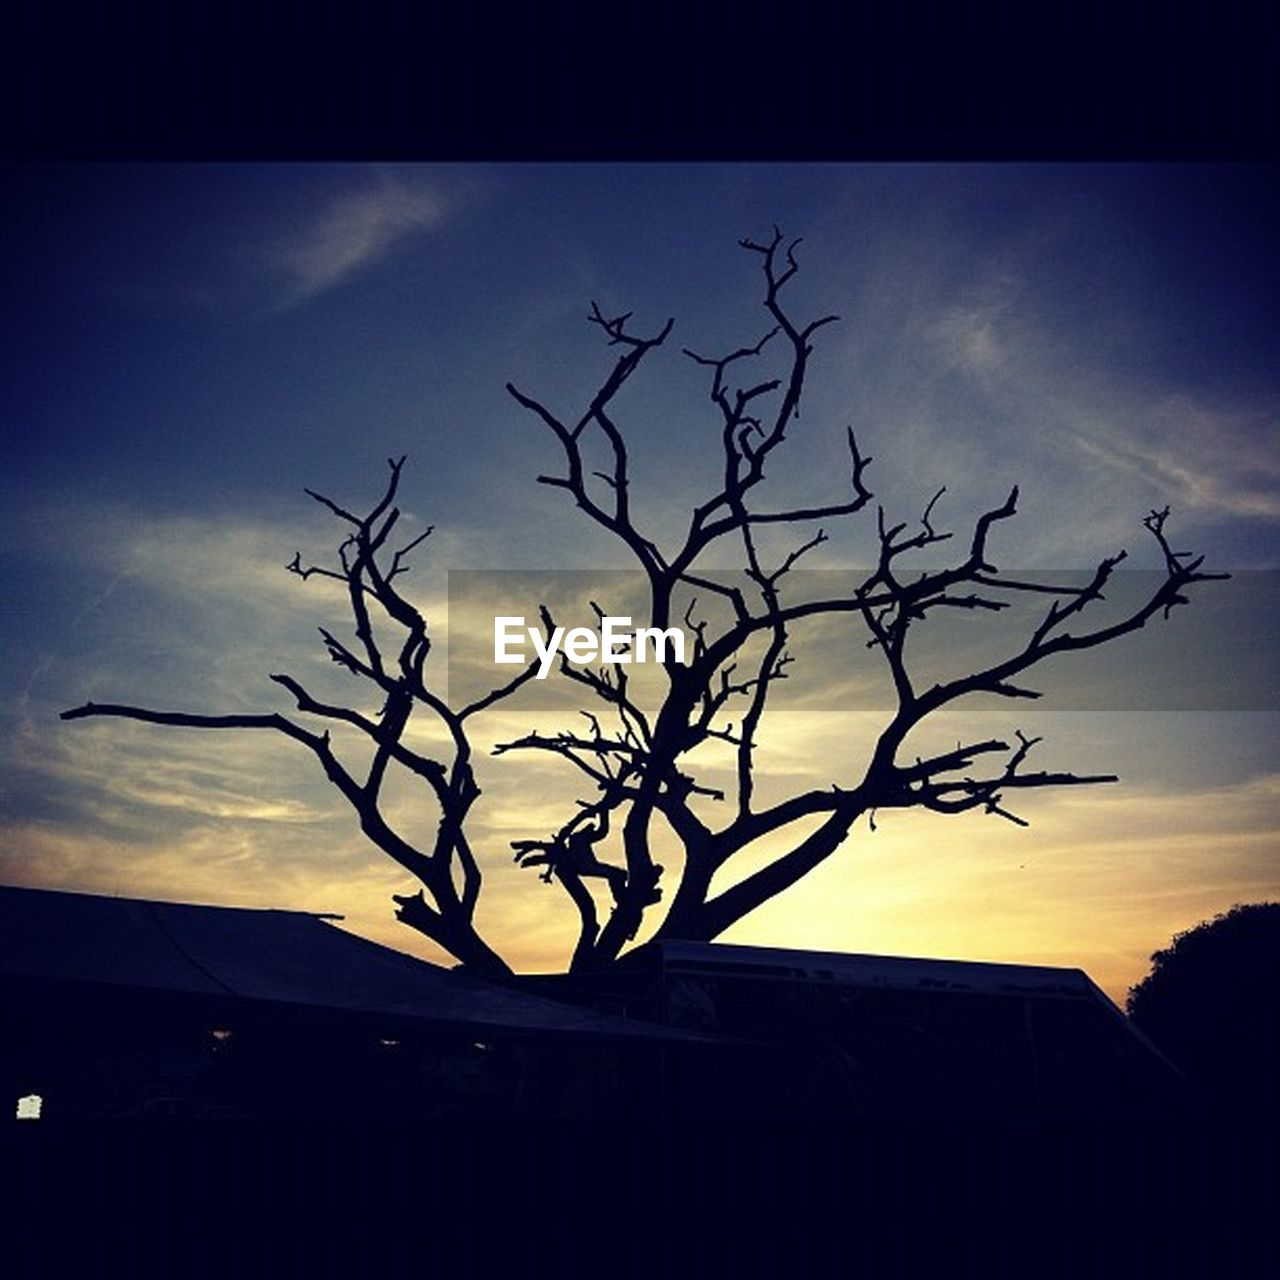 silhouette, sky, no people, nature, sunset, tree, bare tree, outdoors, branch, beauty in nature, day